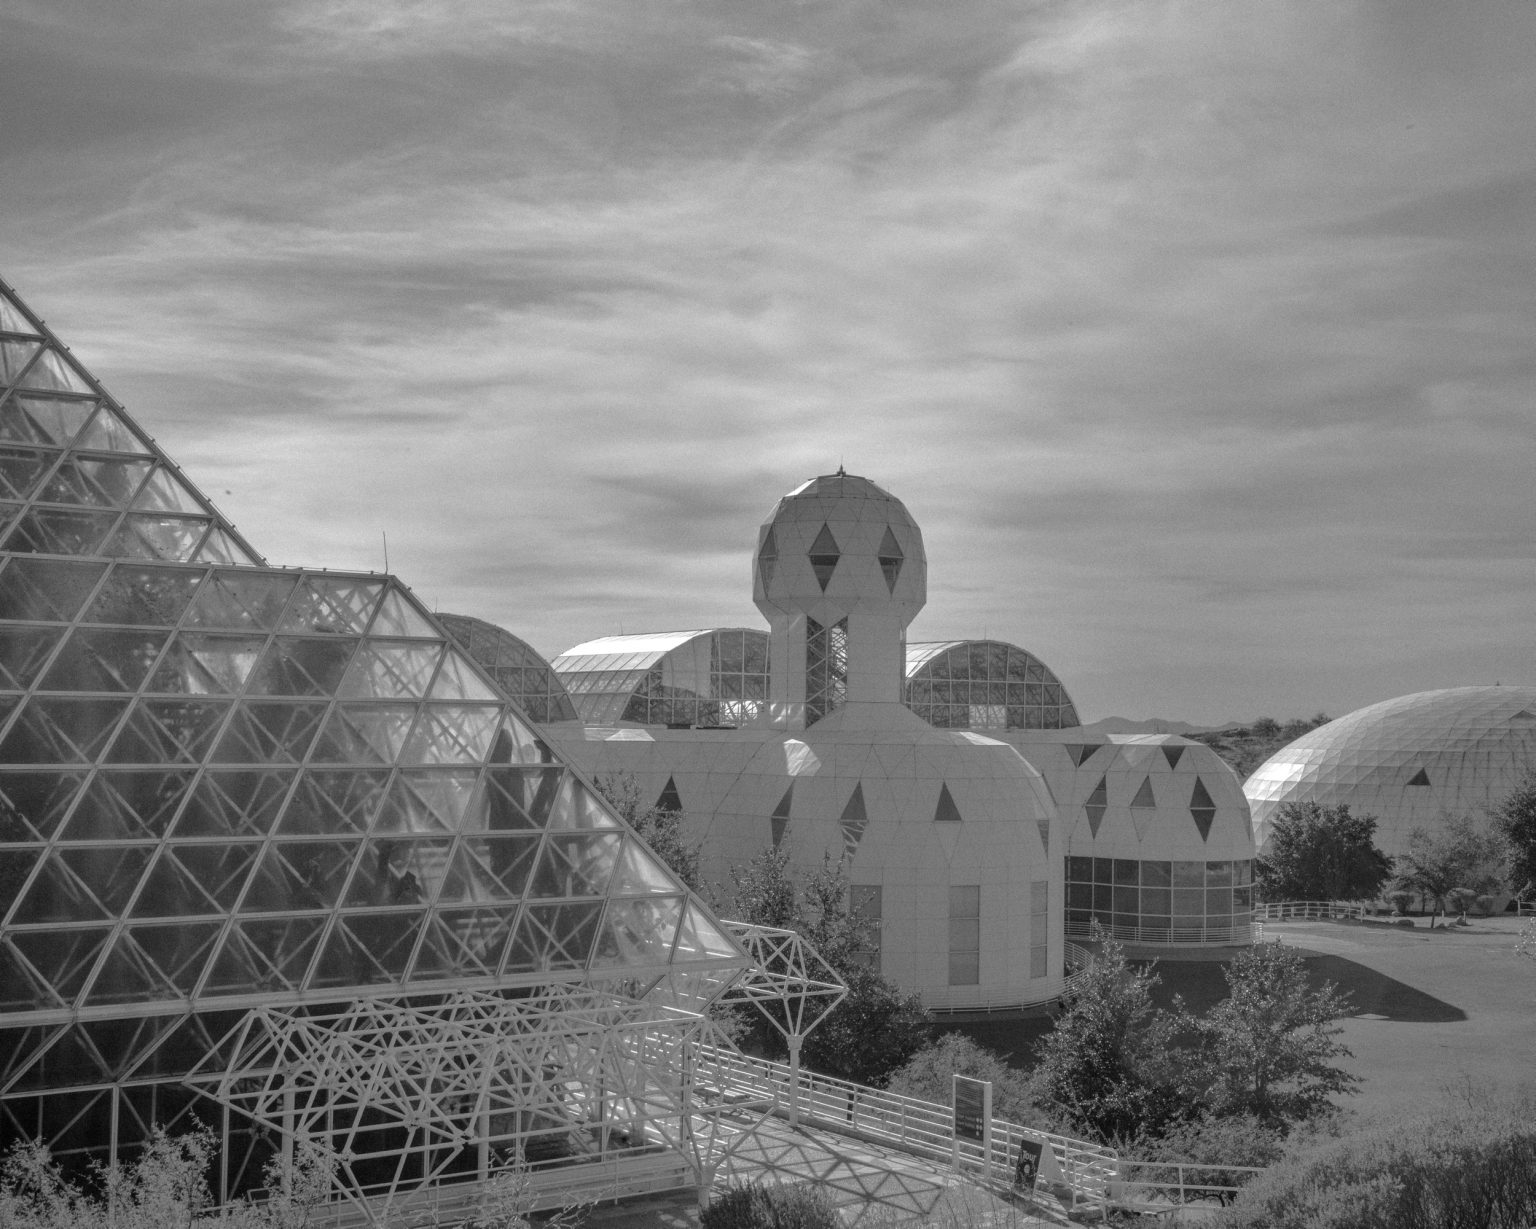 Biosphere 2 is an American Earth system science research facility located in Oracle, Arizona. Biosphere 2 was originally meant to demonstrate the viability of closed ecological systems to support and maintain human life in outer space. It was designed to explore the web of interactions within life systems in a structure with different areas based on various biological biomes. Oracle, AZ. November 2017.